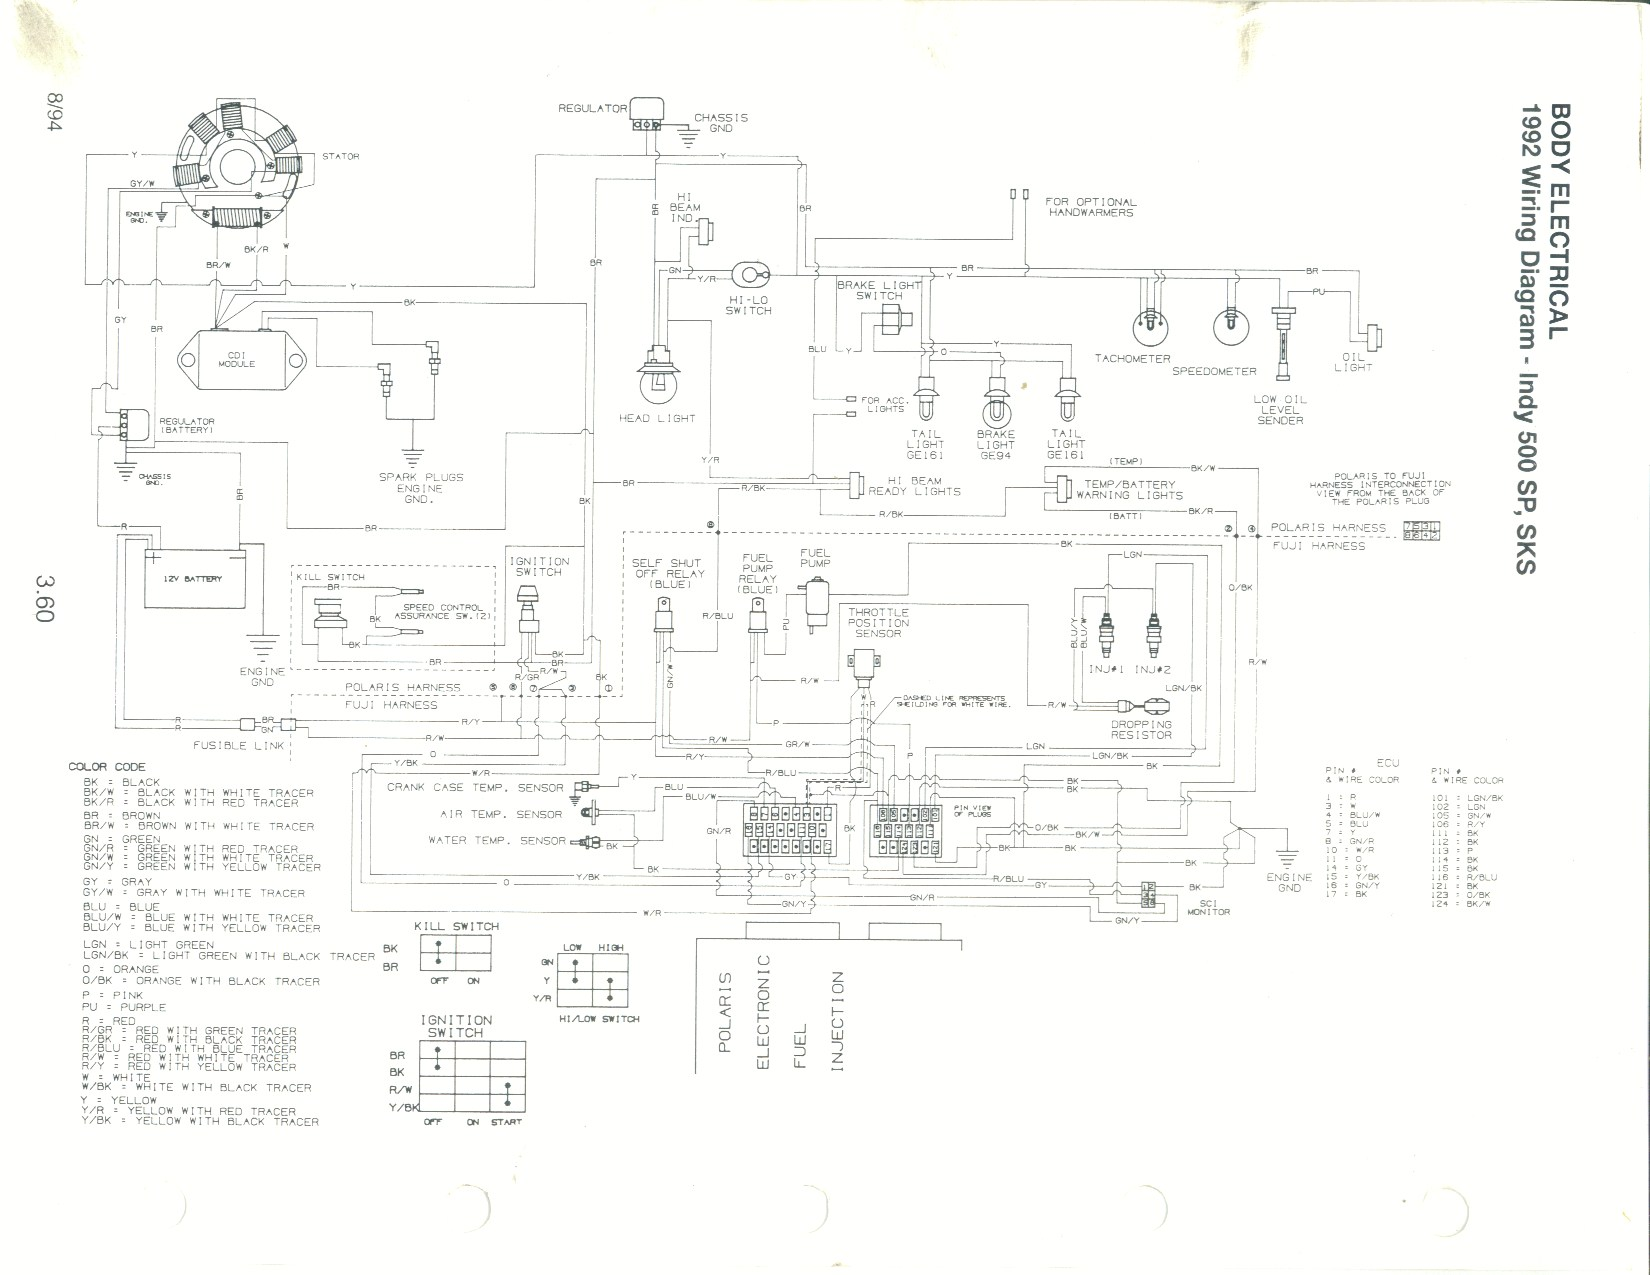 [DIAGRAM] Wiring Diagram Polaris Indy 600 FULL Version HD